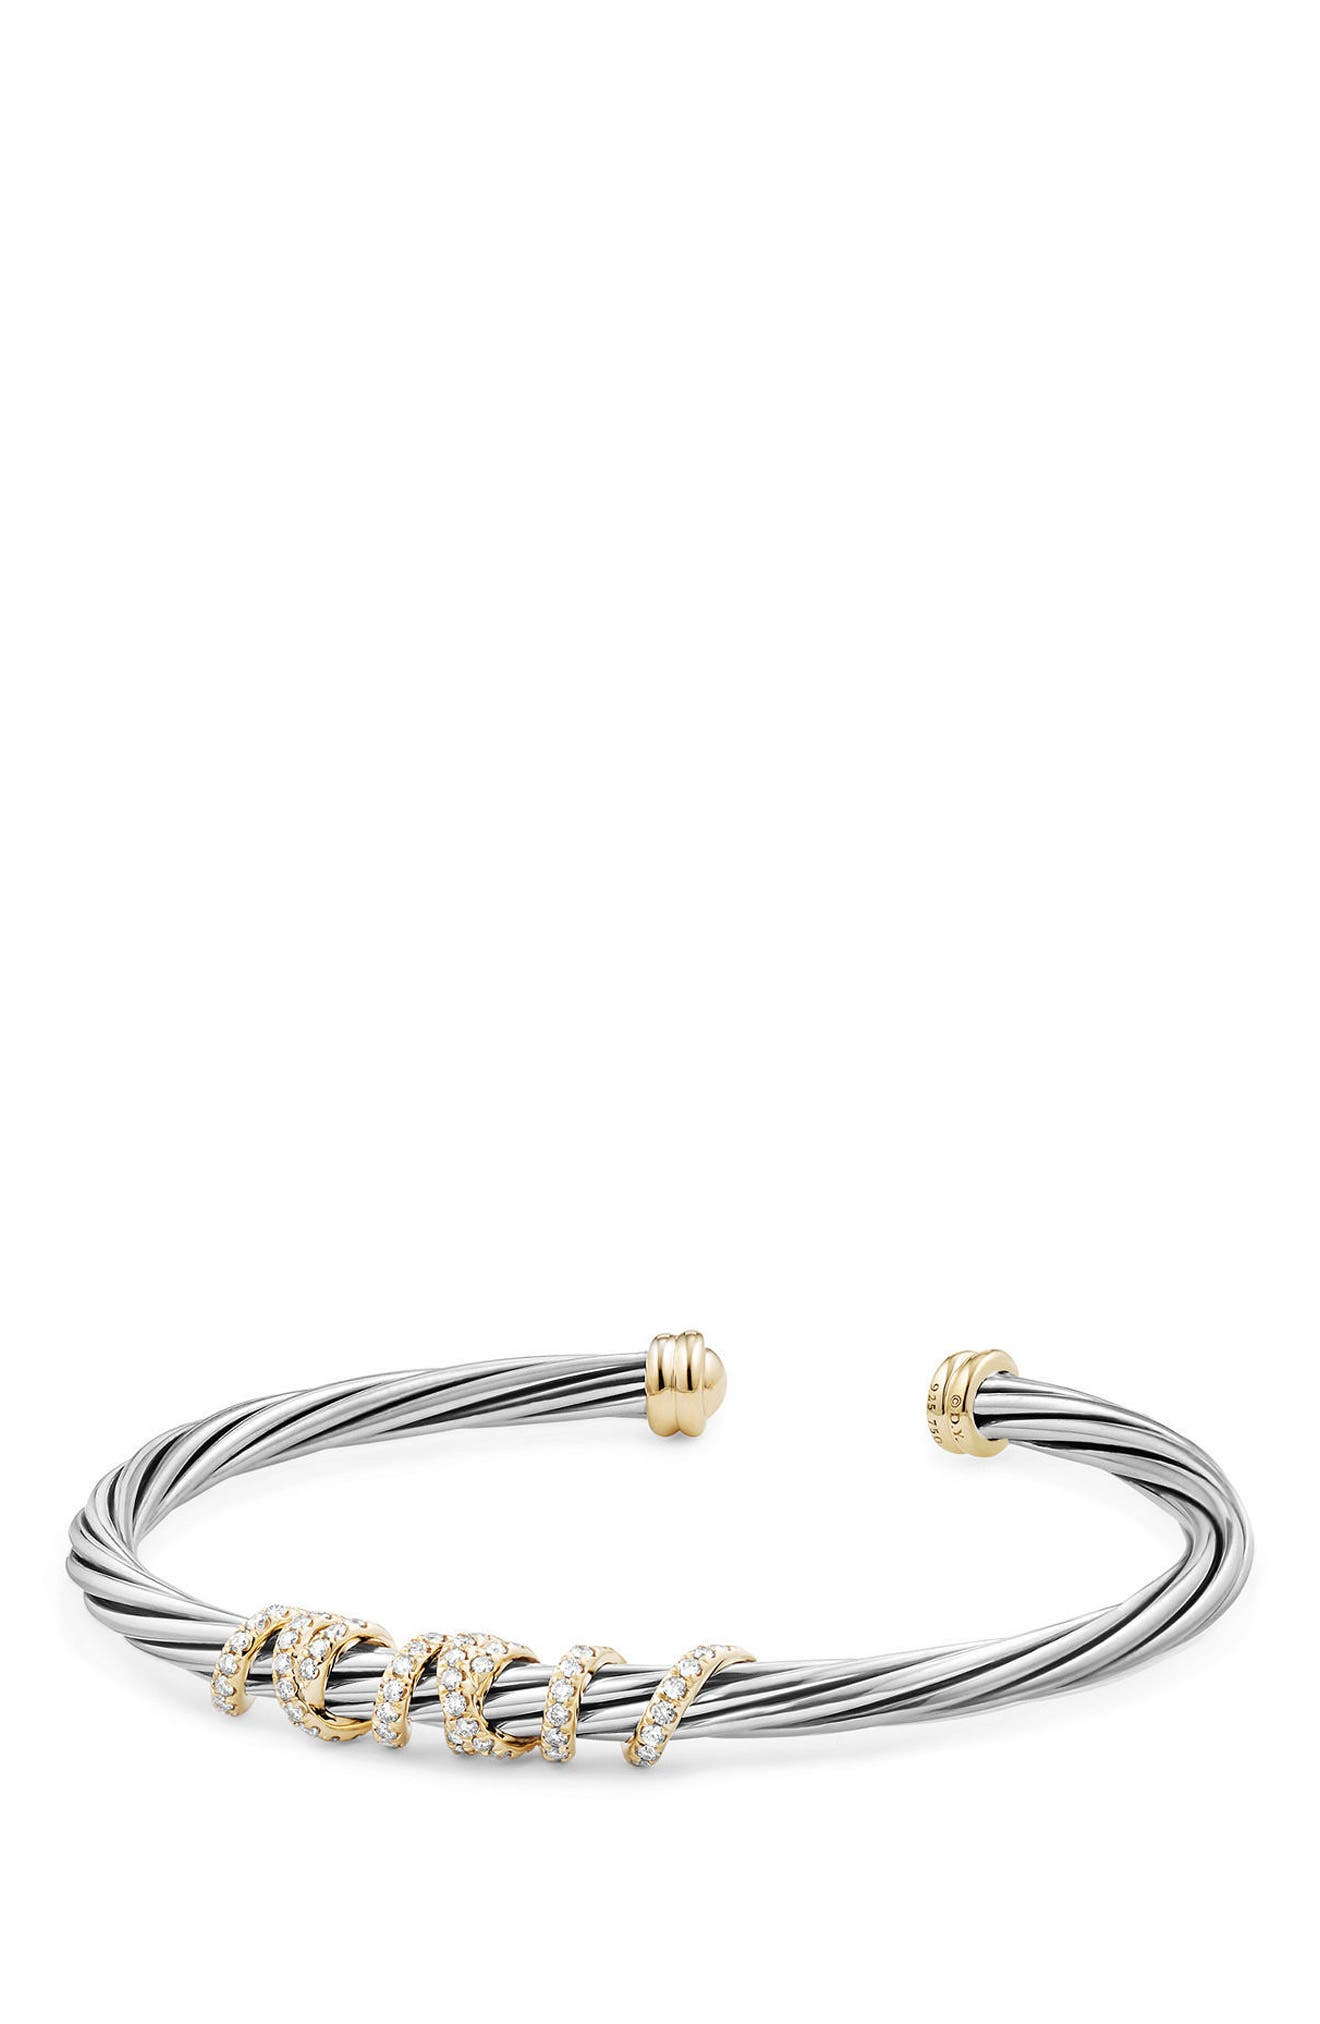 Helena Center Station Bracelet with Diamonds and 18K Gold, 4mm,                             Main thumbnail 1, color,                             SILVER/ GOLD